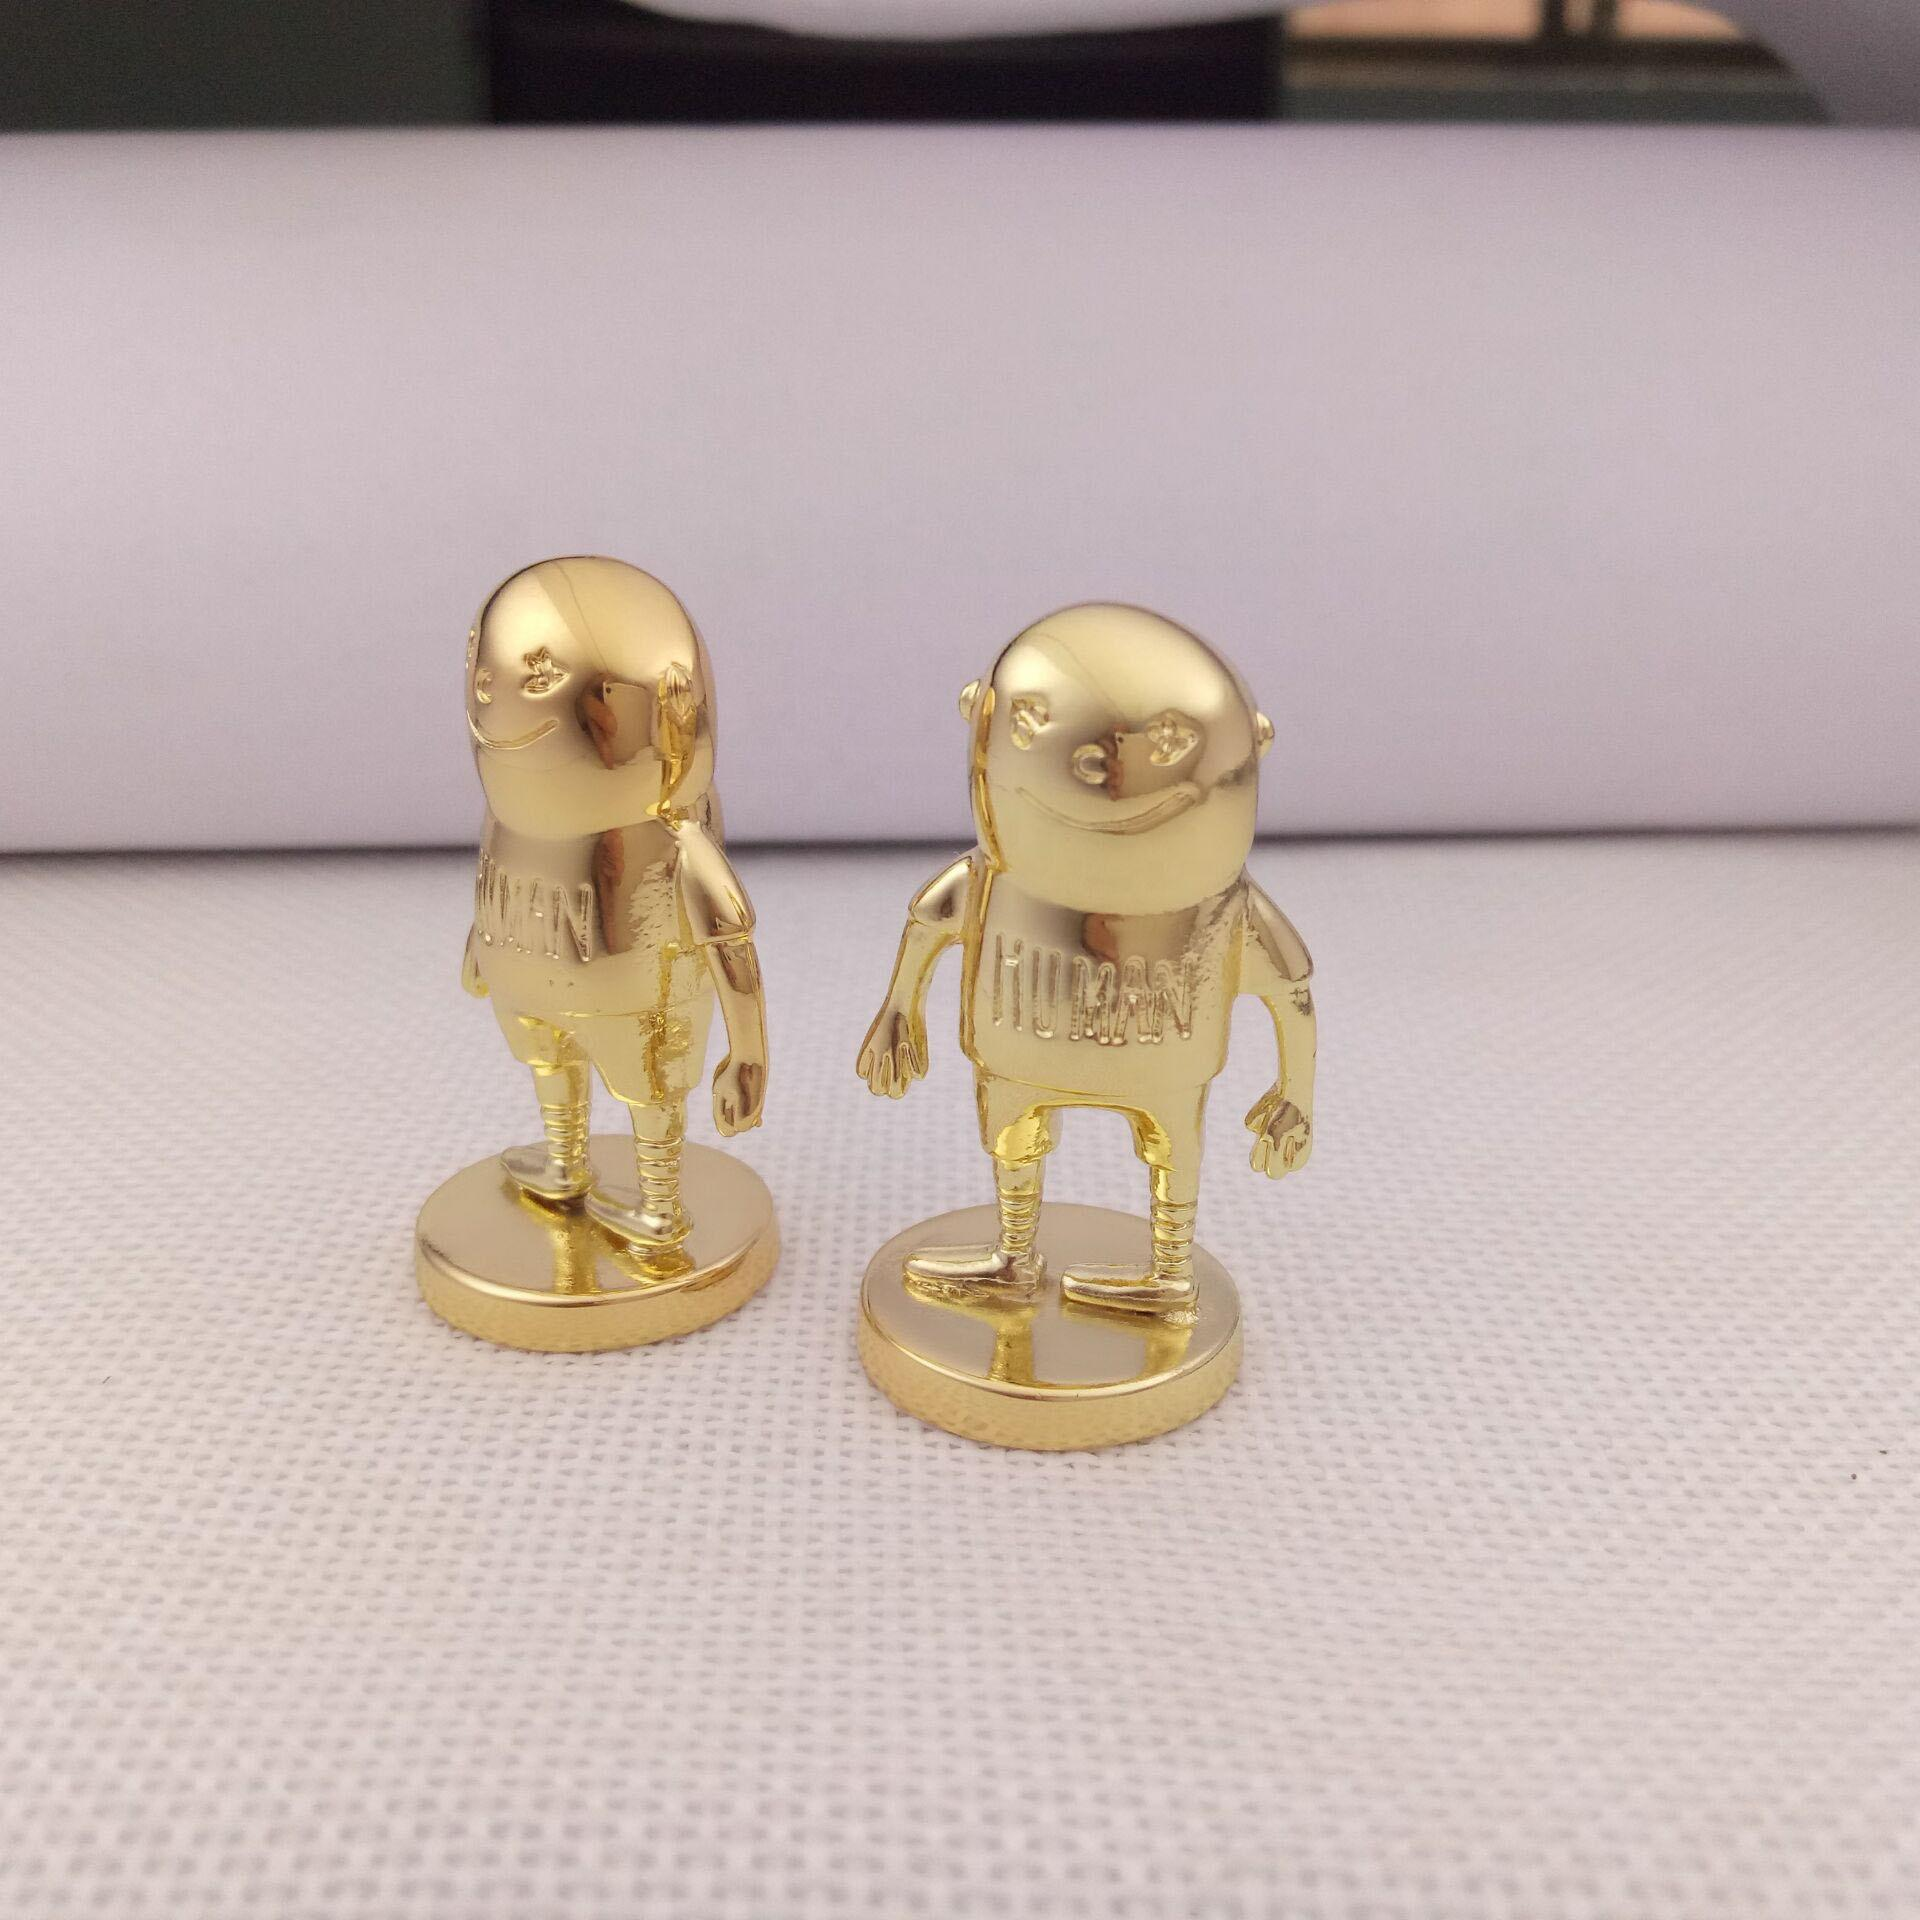 Fan made custom home office interior decoration golden metal japanese movie statue for desk